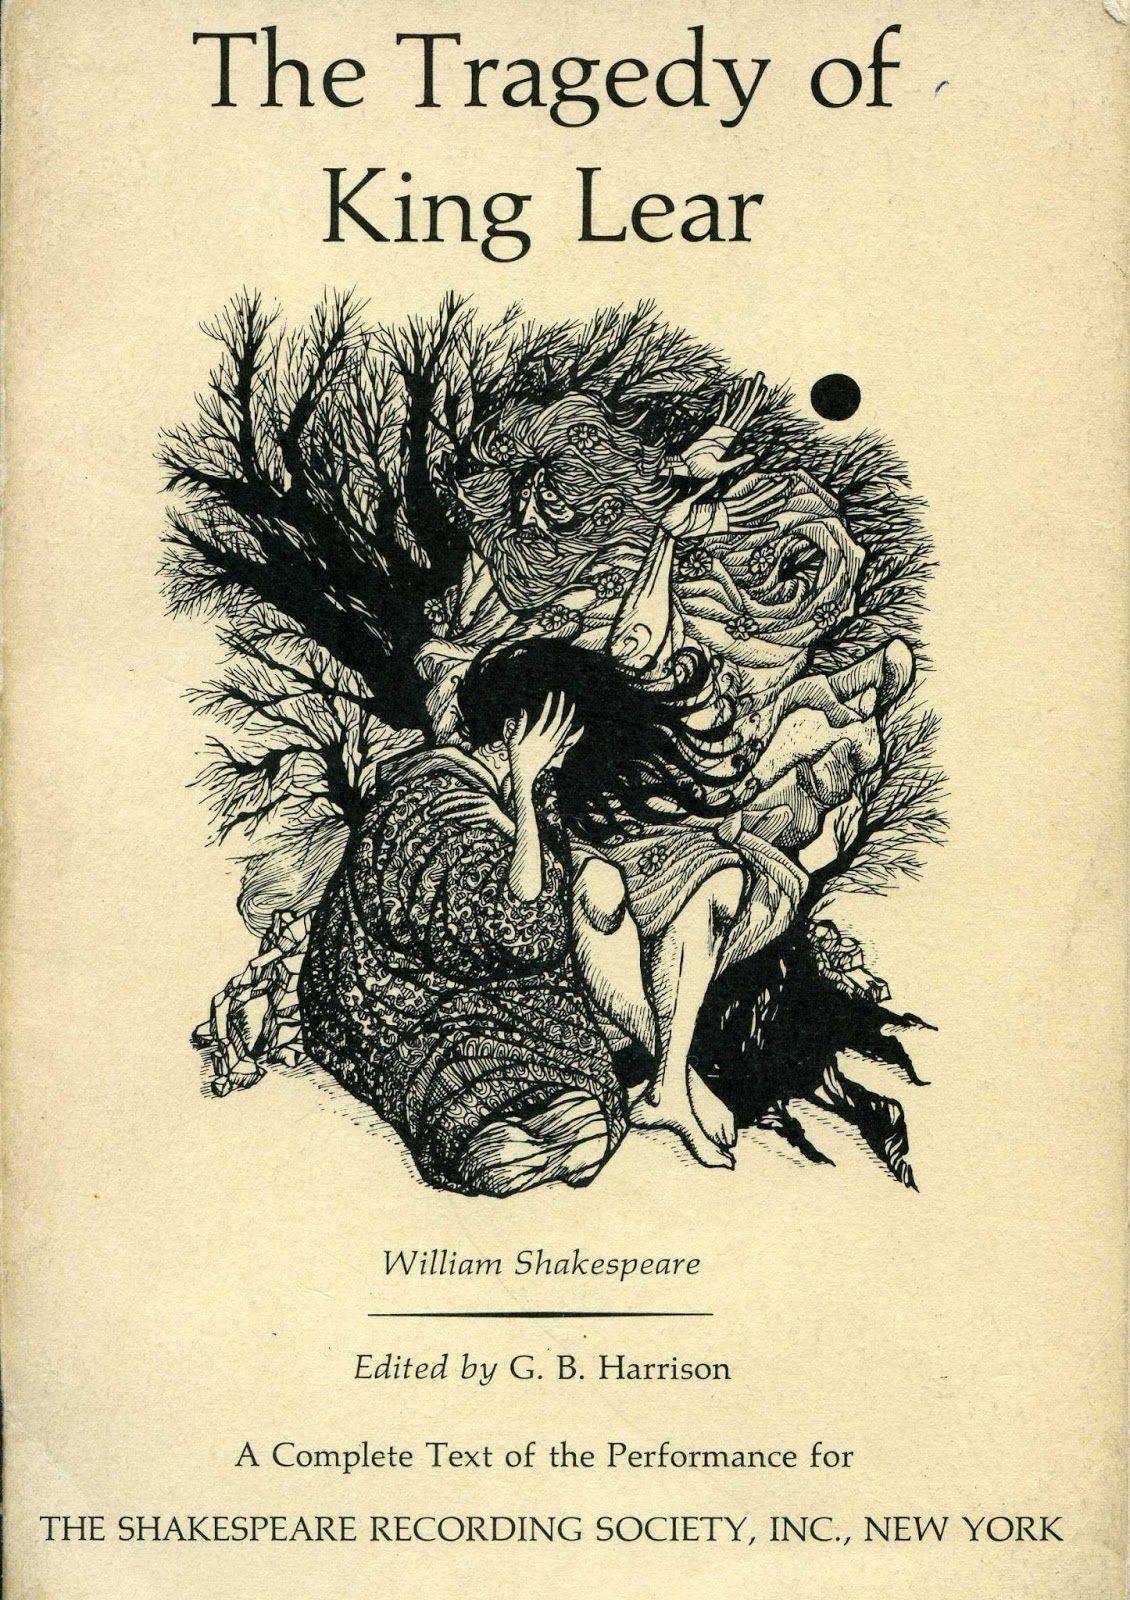 an essay on king lear-shakespeare The film ran and the play the tragedy of king lear can be related to each other in many ways kurosawa was able to produce a film that was a valid, effective and relevant portrayal of shakespeare's play.